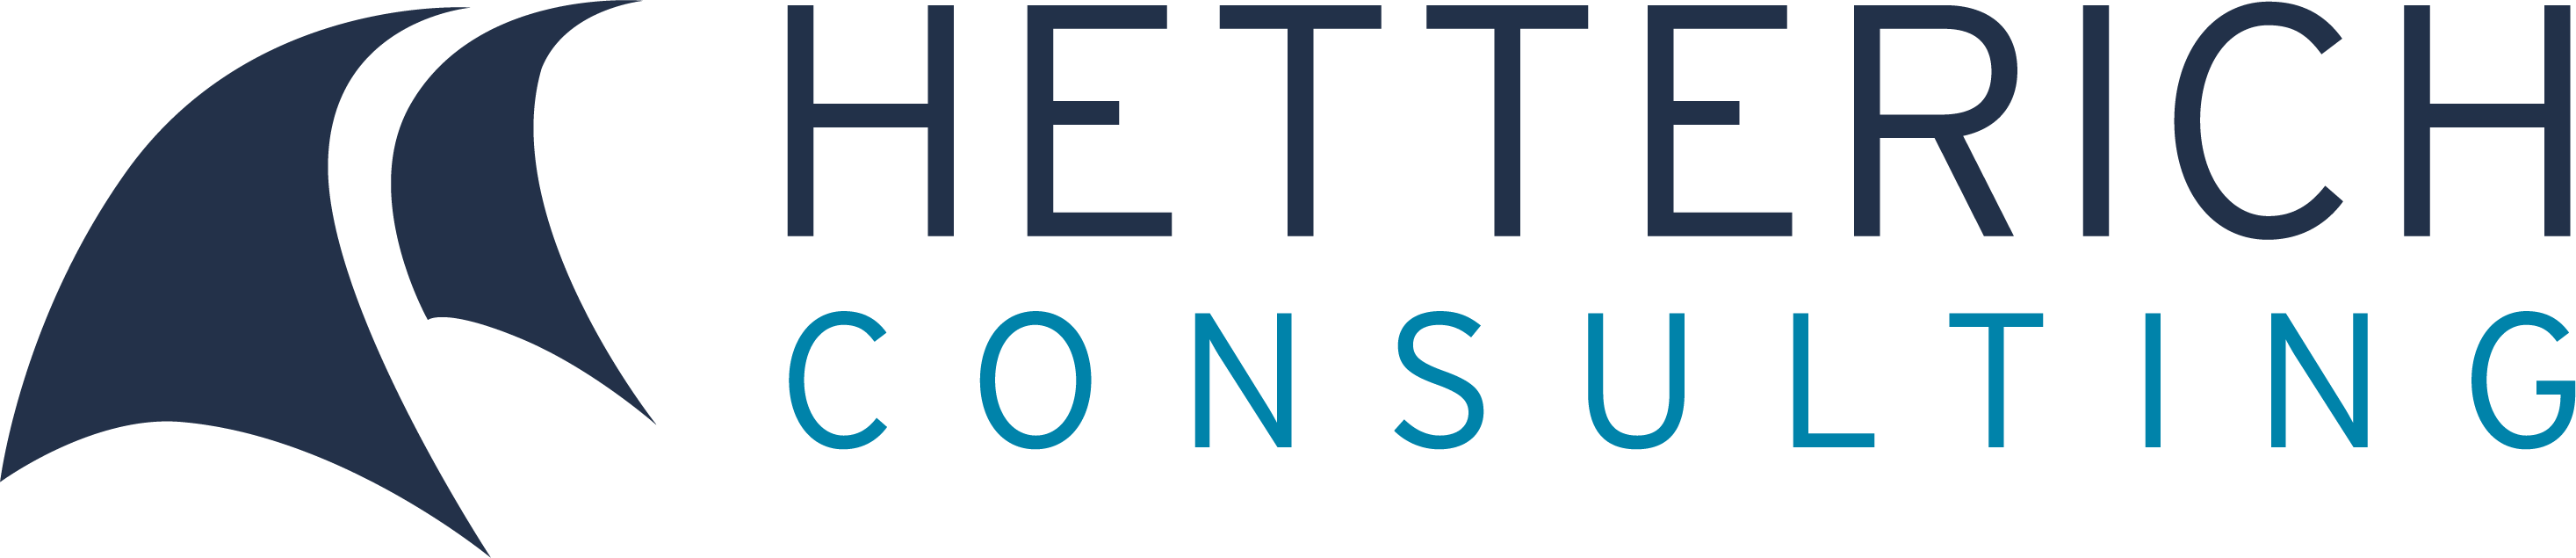 Hetterich Consulting